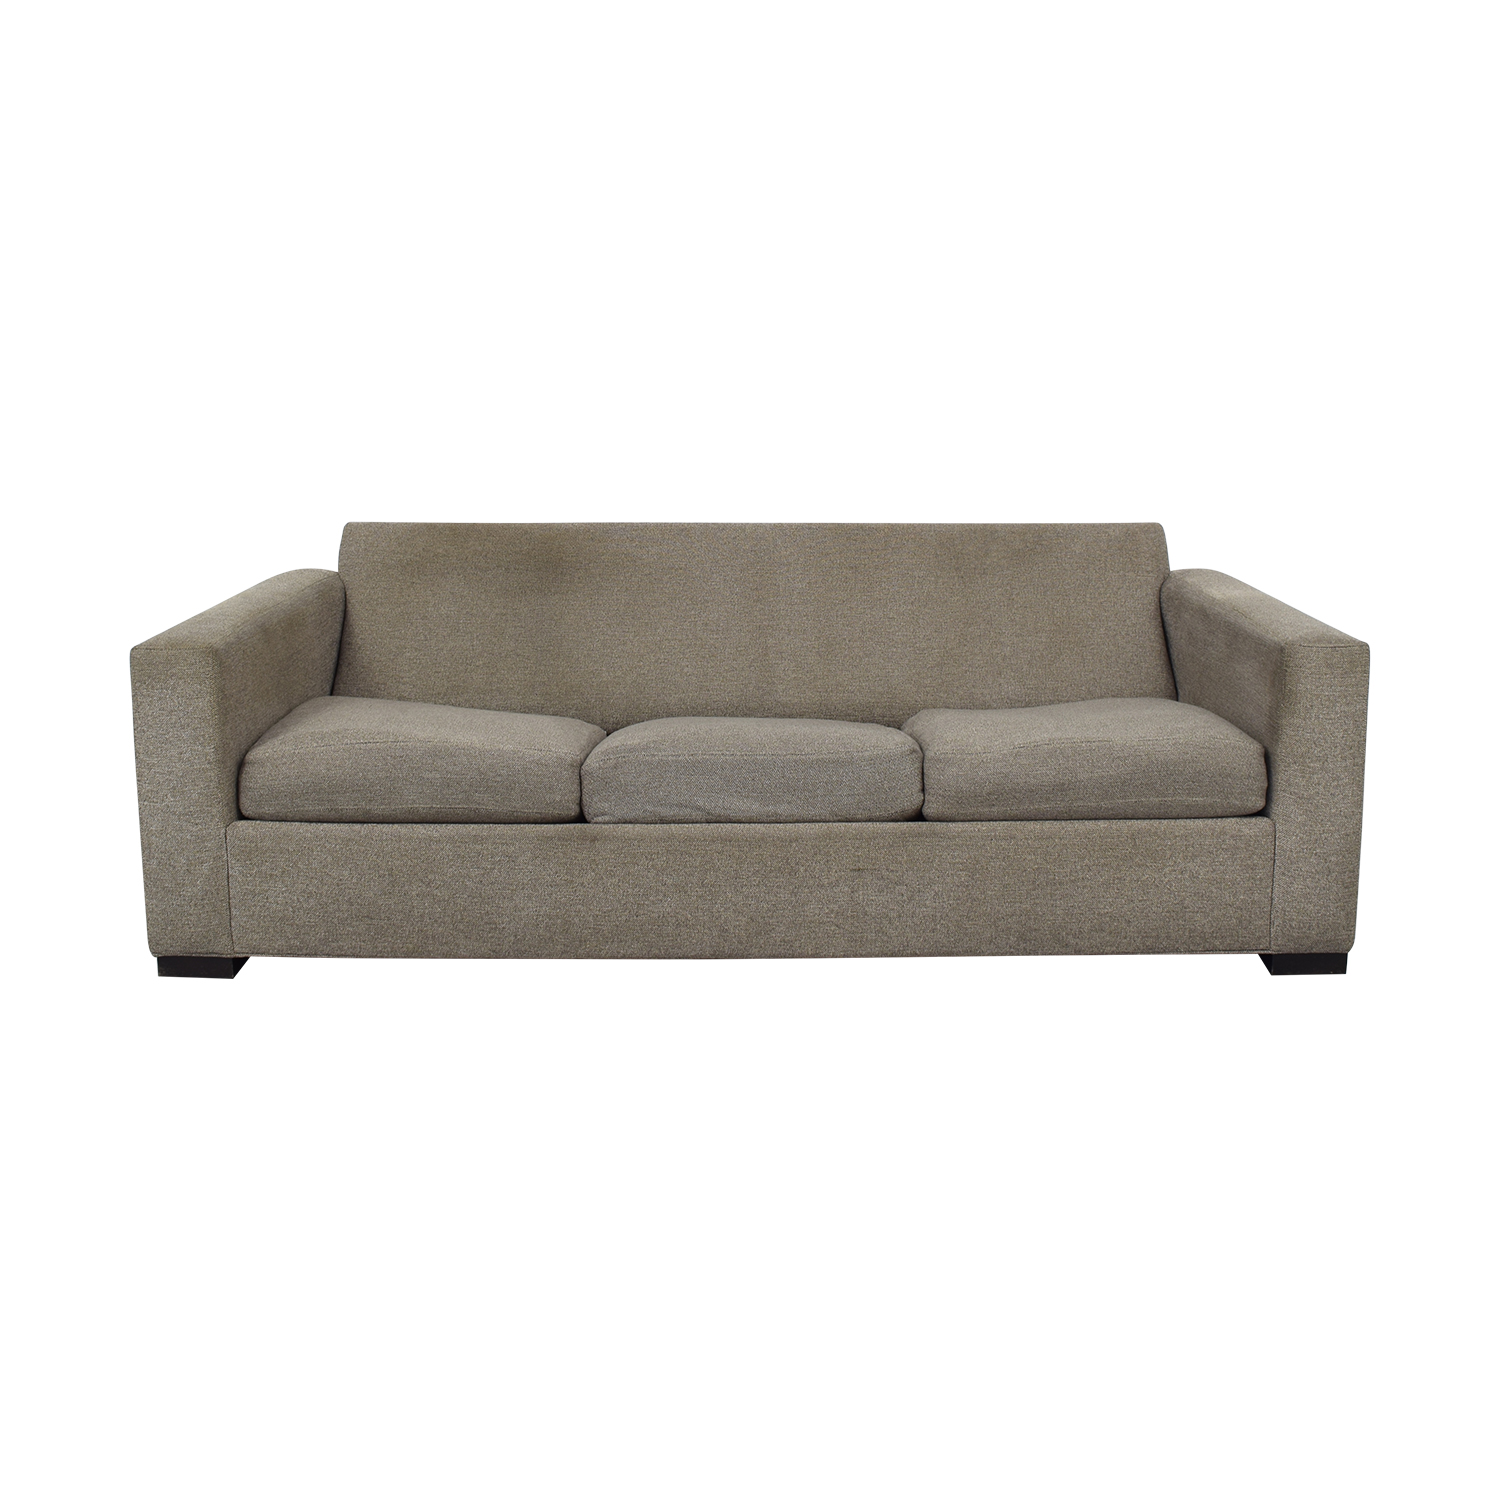 Room & Board Room & Board York Sleeper Sofa Sofa Beds